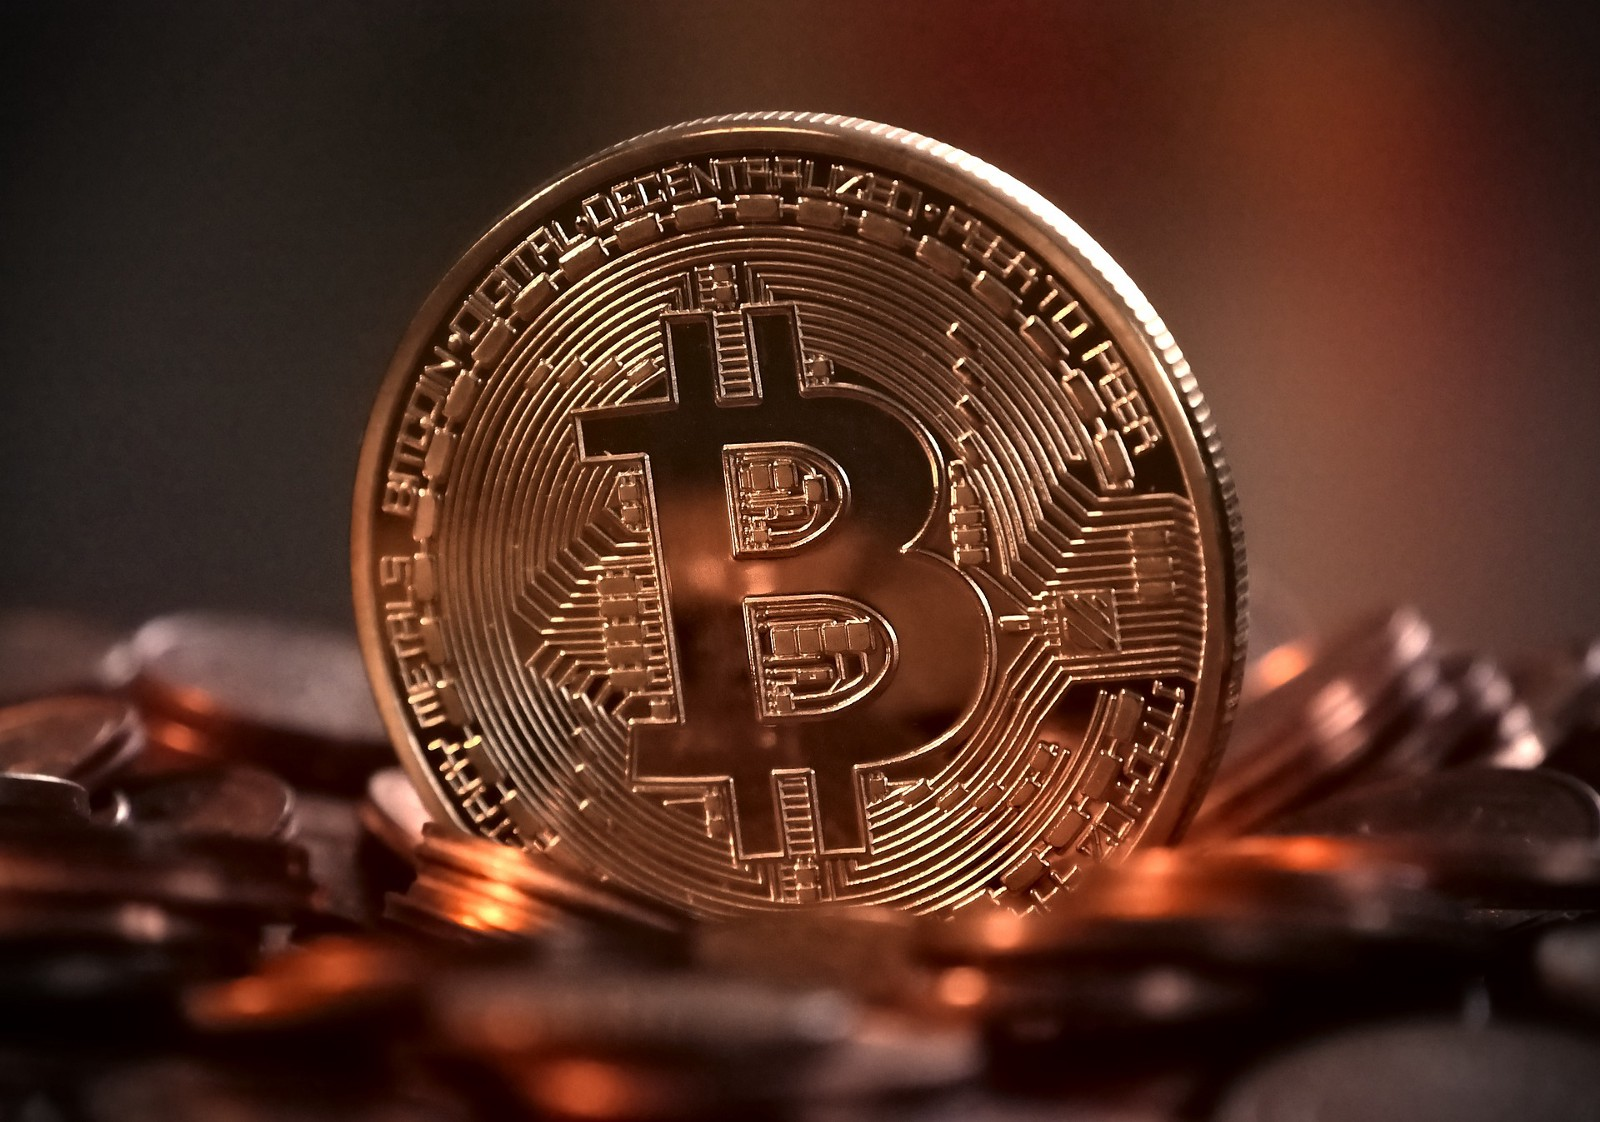 /the-industry-life-cycle-making-a-strong-case-for-bitcoin-maximalism-6bfa4a437a41 feature image